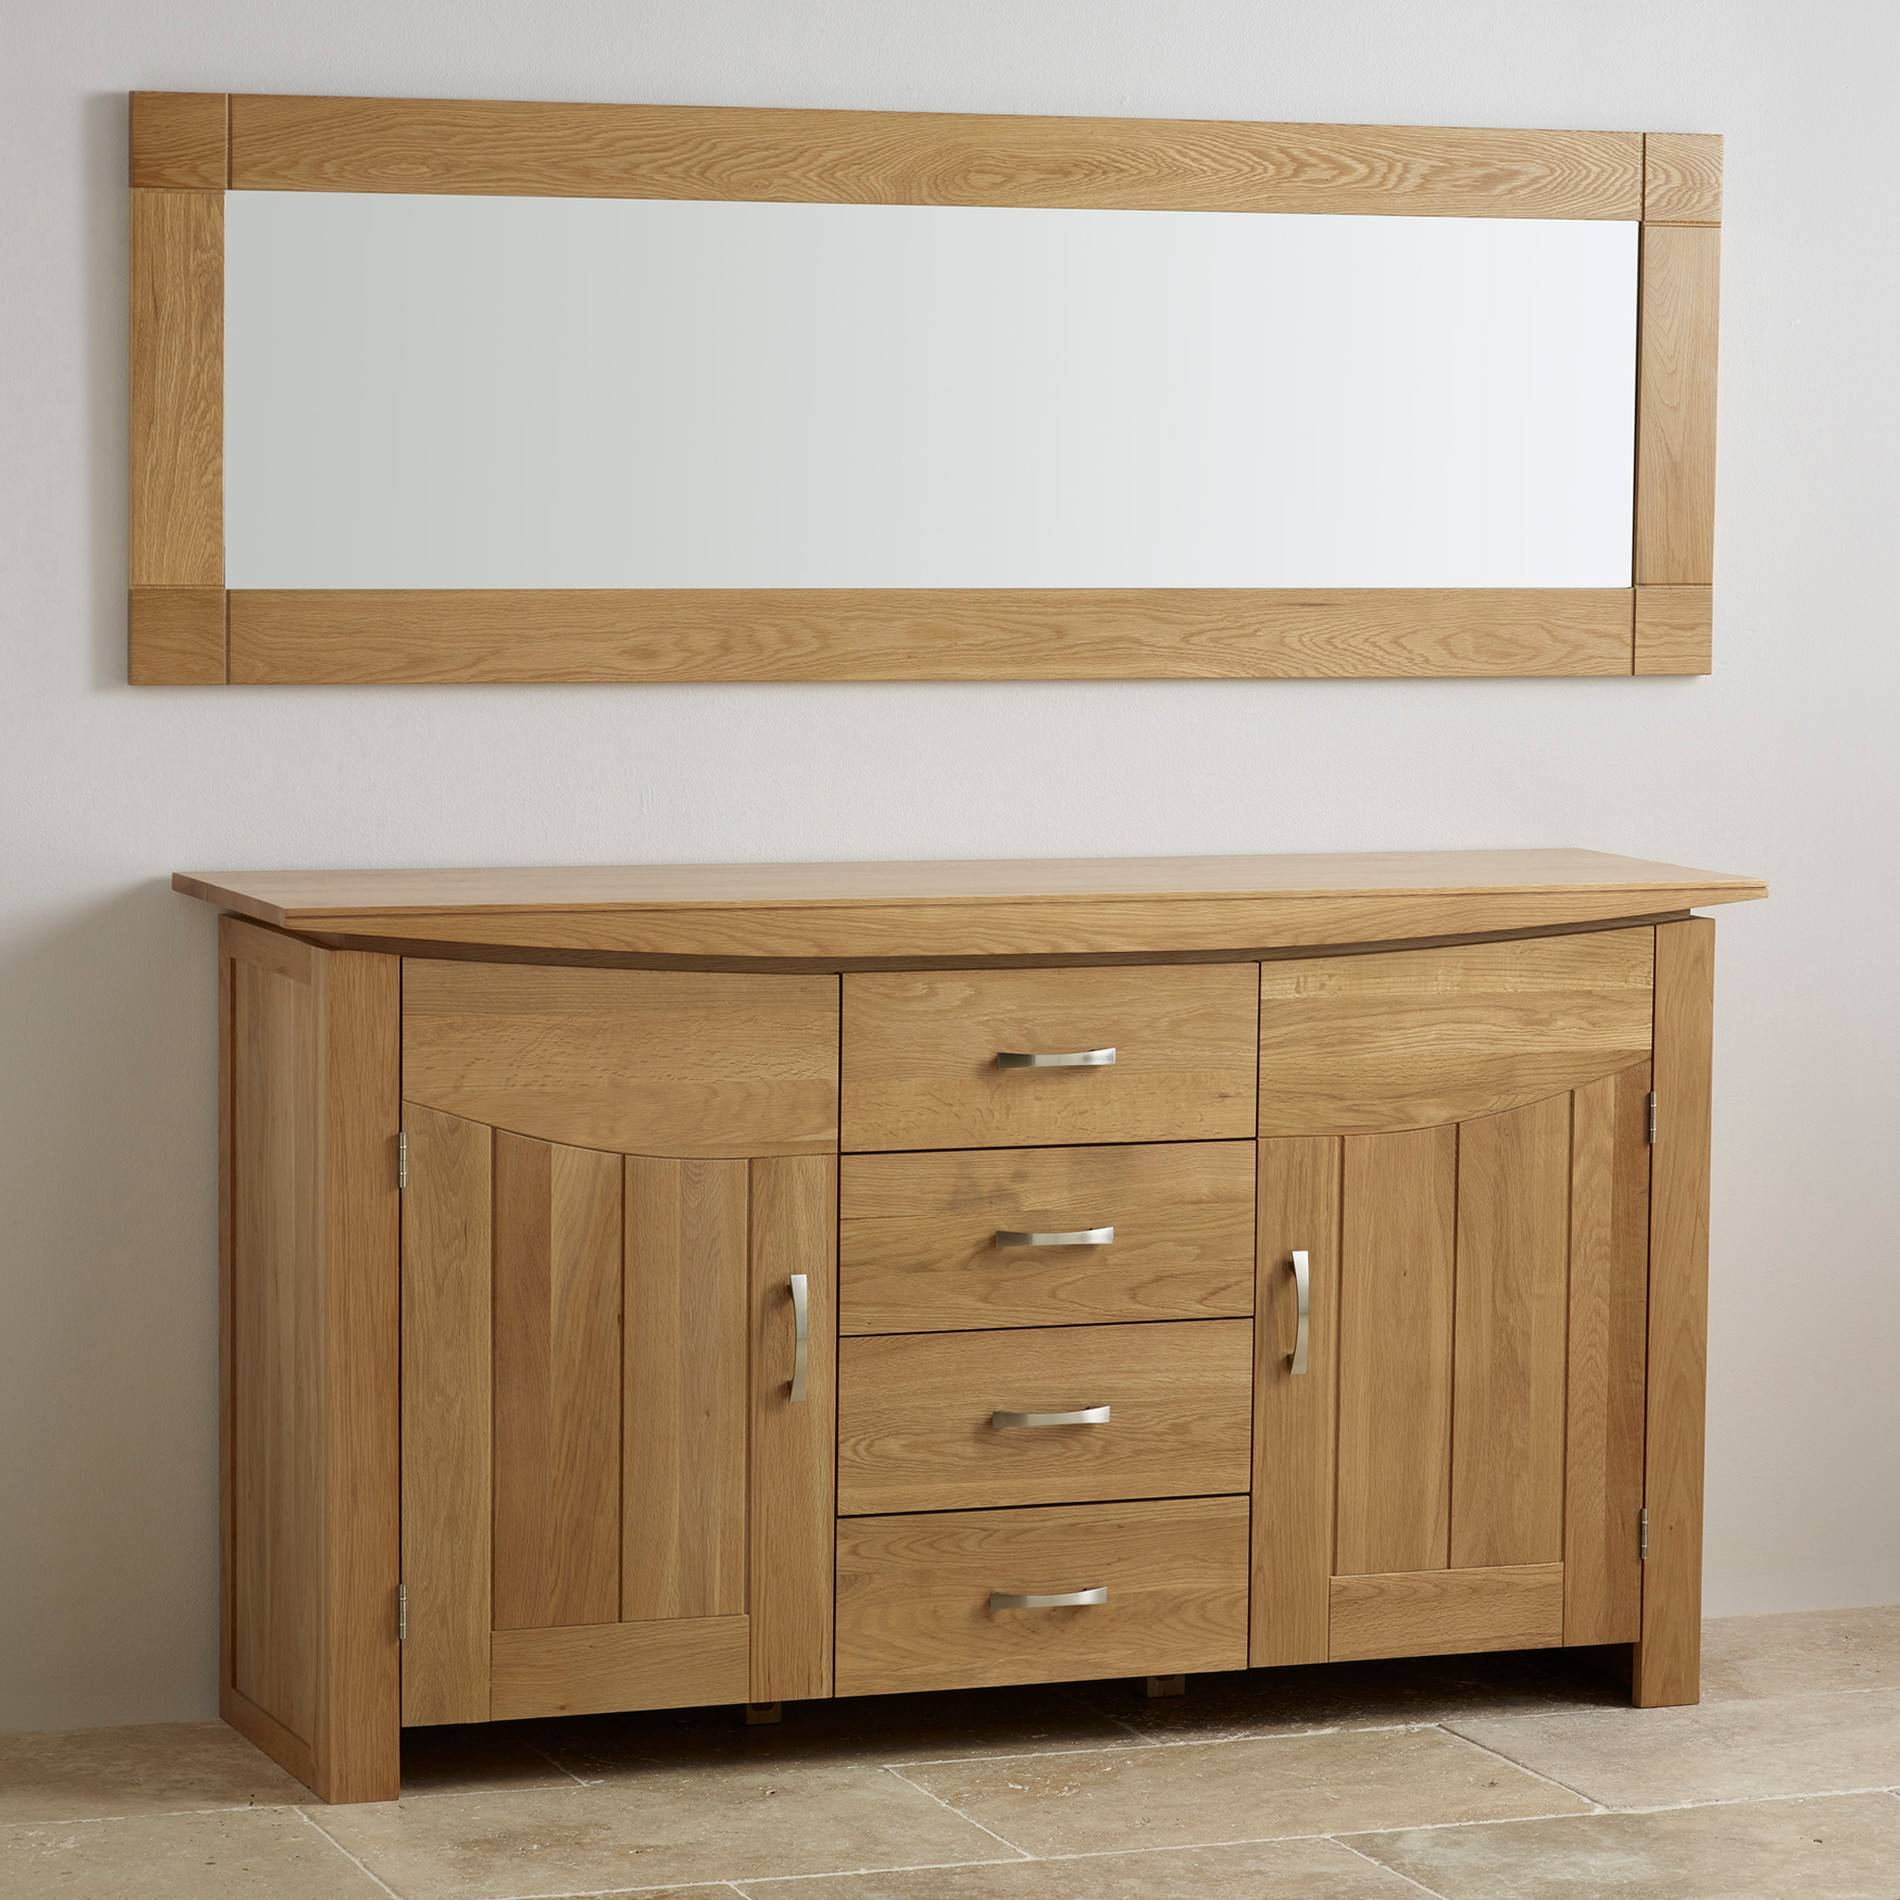 Contemporary Natural Solid Oak Wall Mirror – 1800Mm X 600Mm With Regard To Most Popular Oak Furniture Land Sideboards (#4 of 15)